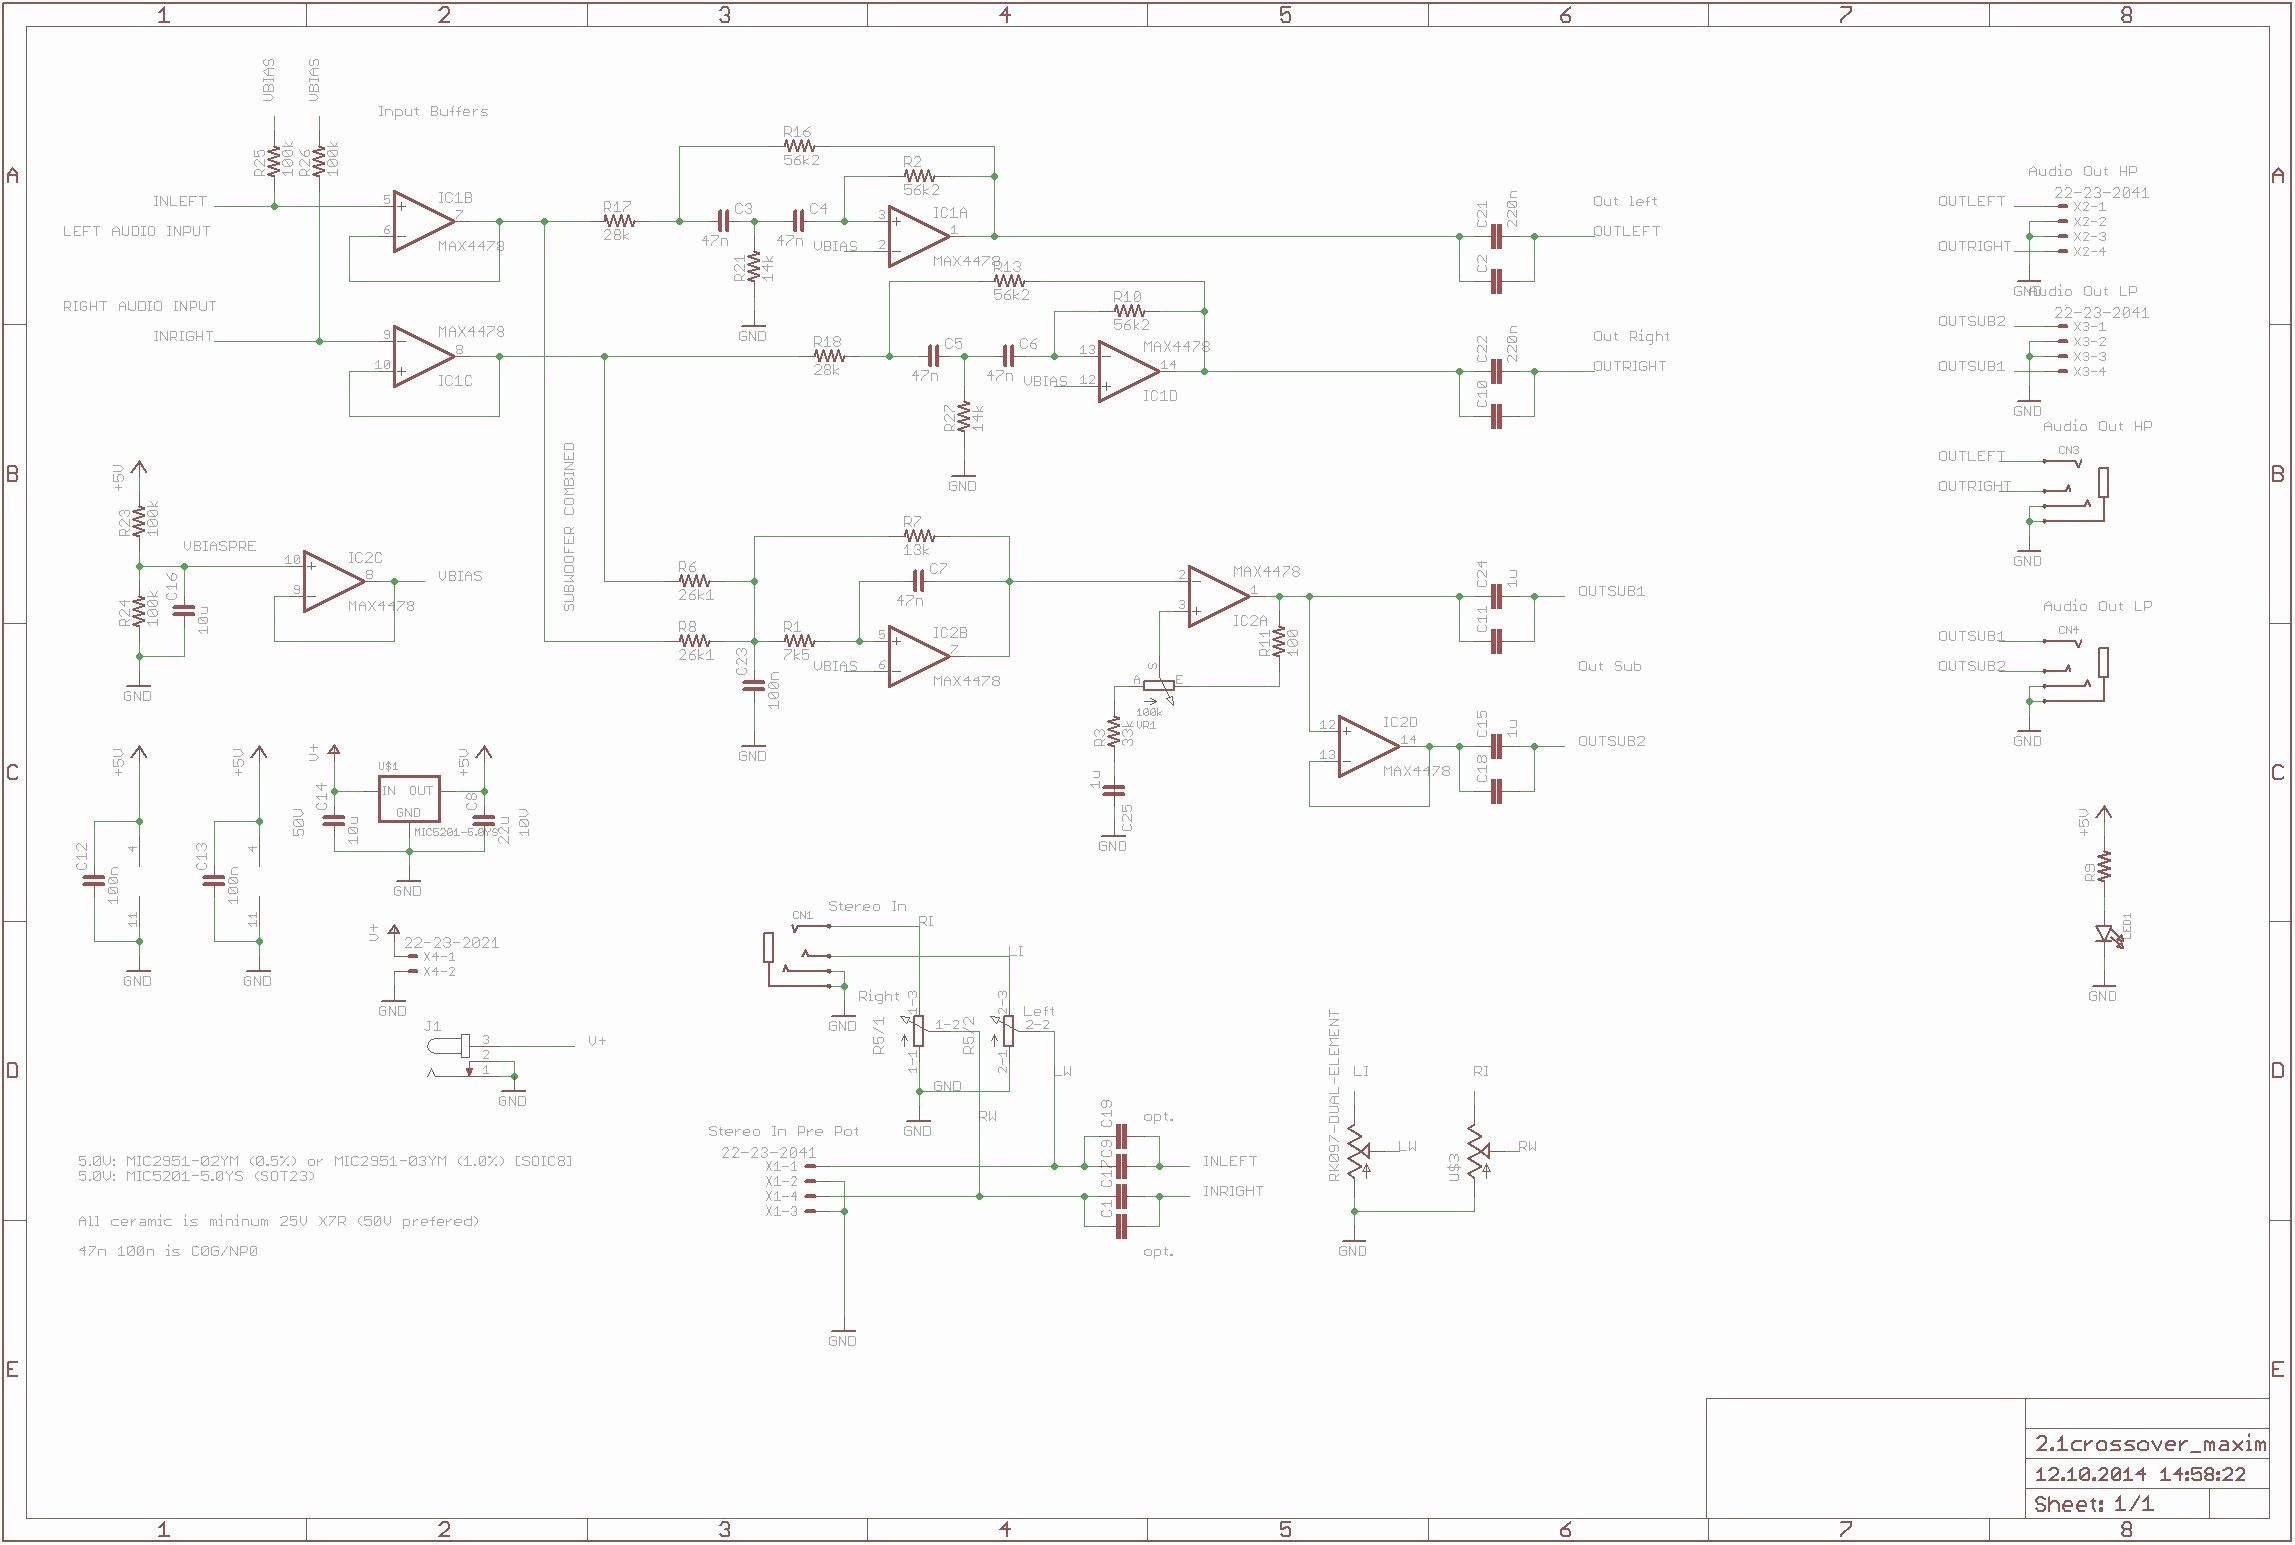 Fahrenheat Wiring Diagram Lovely T3 Light Fixture Wiring Diagram - Light Fixture Wiring Diagram